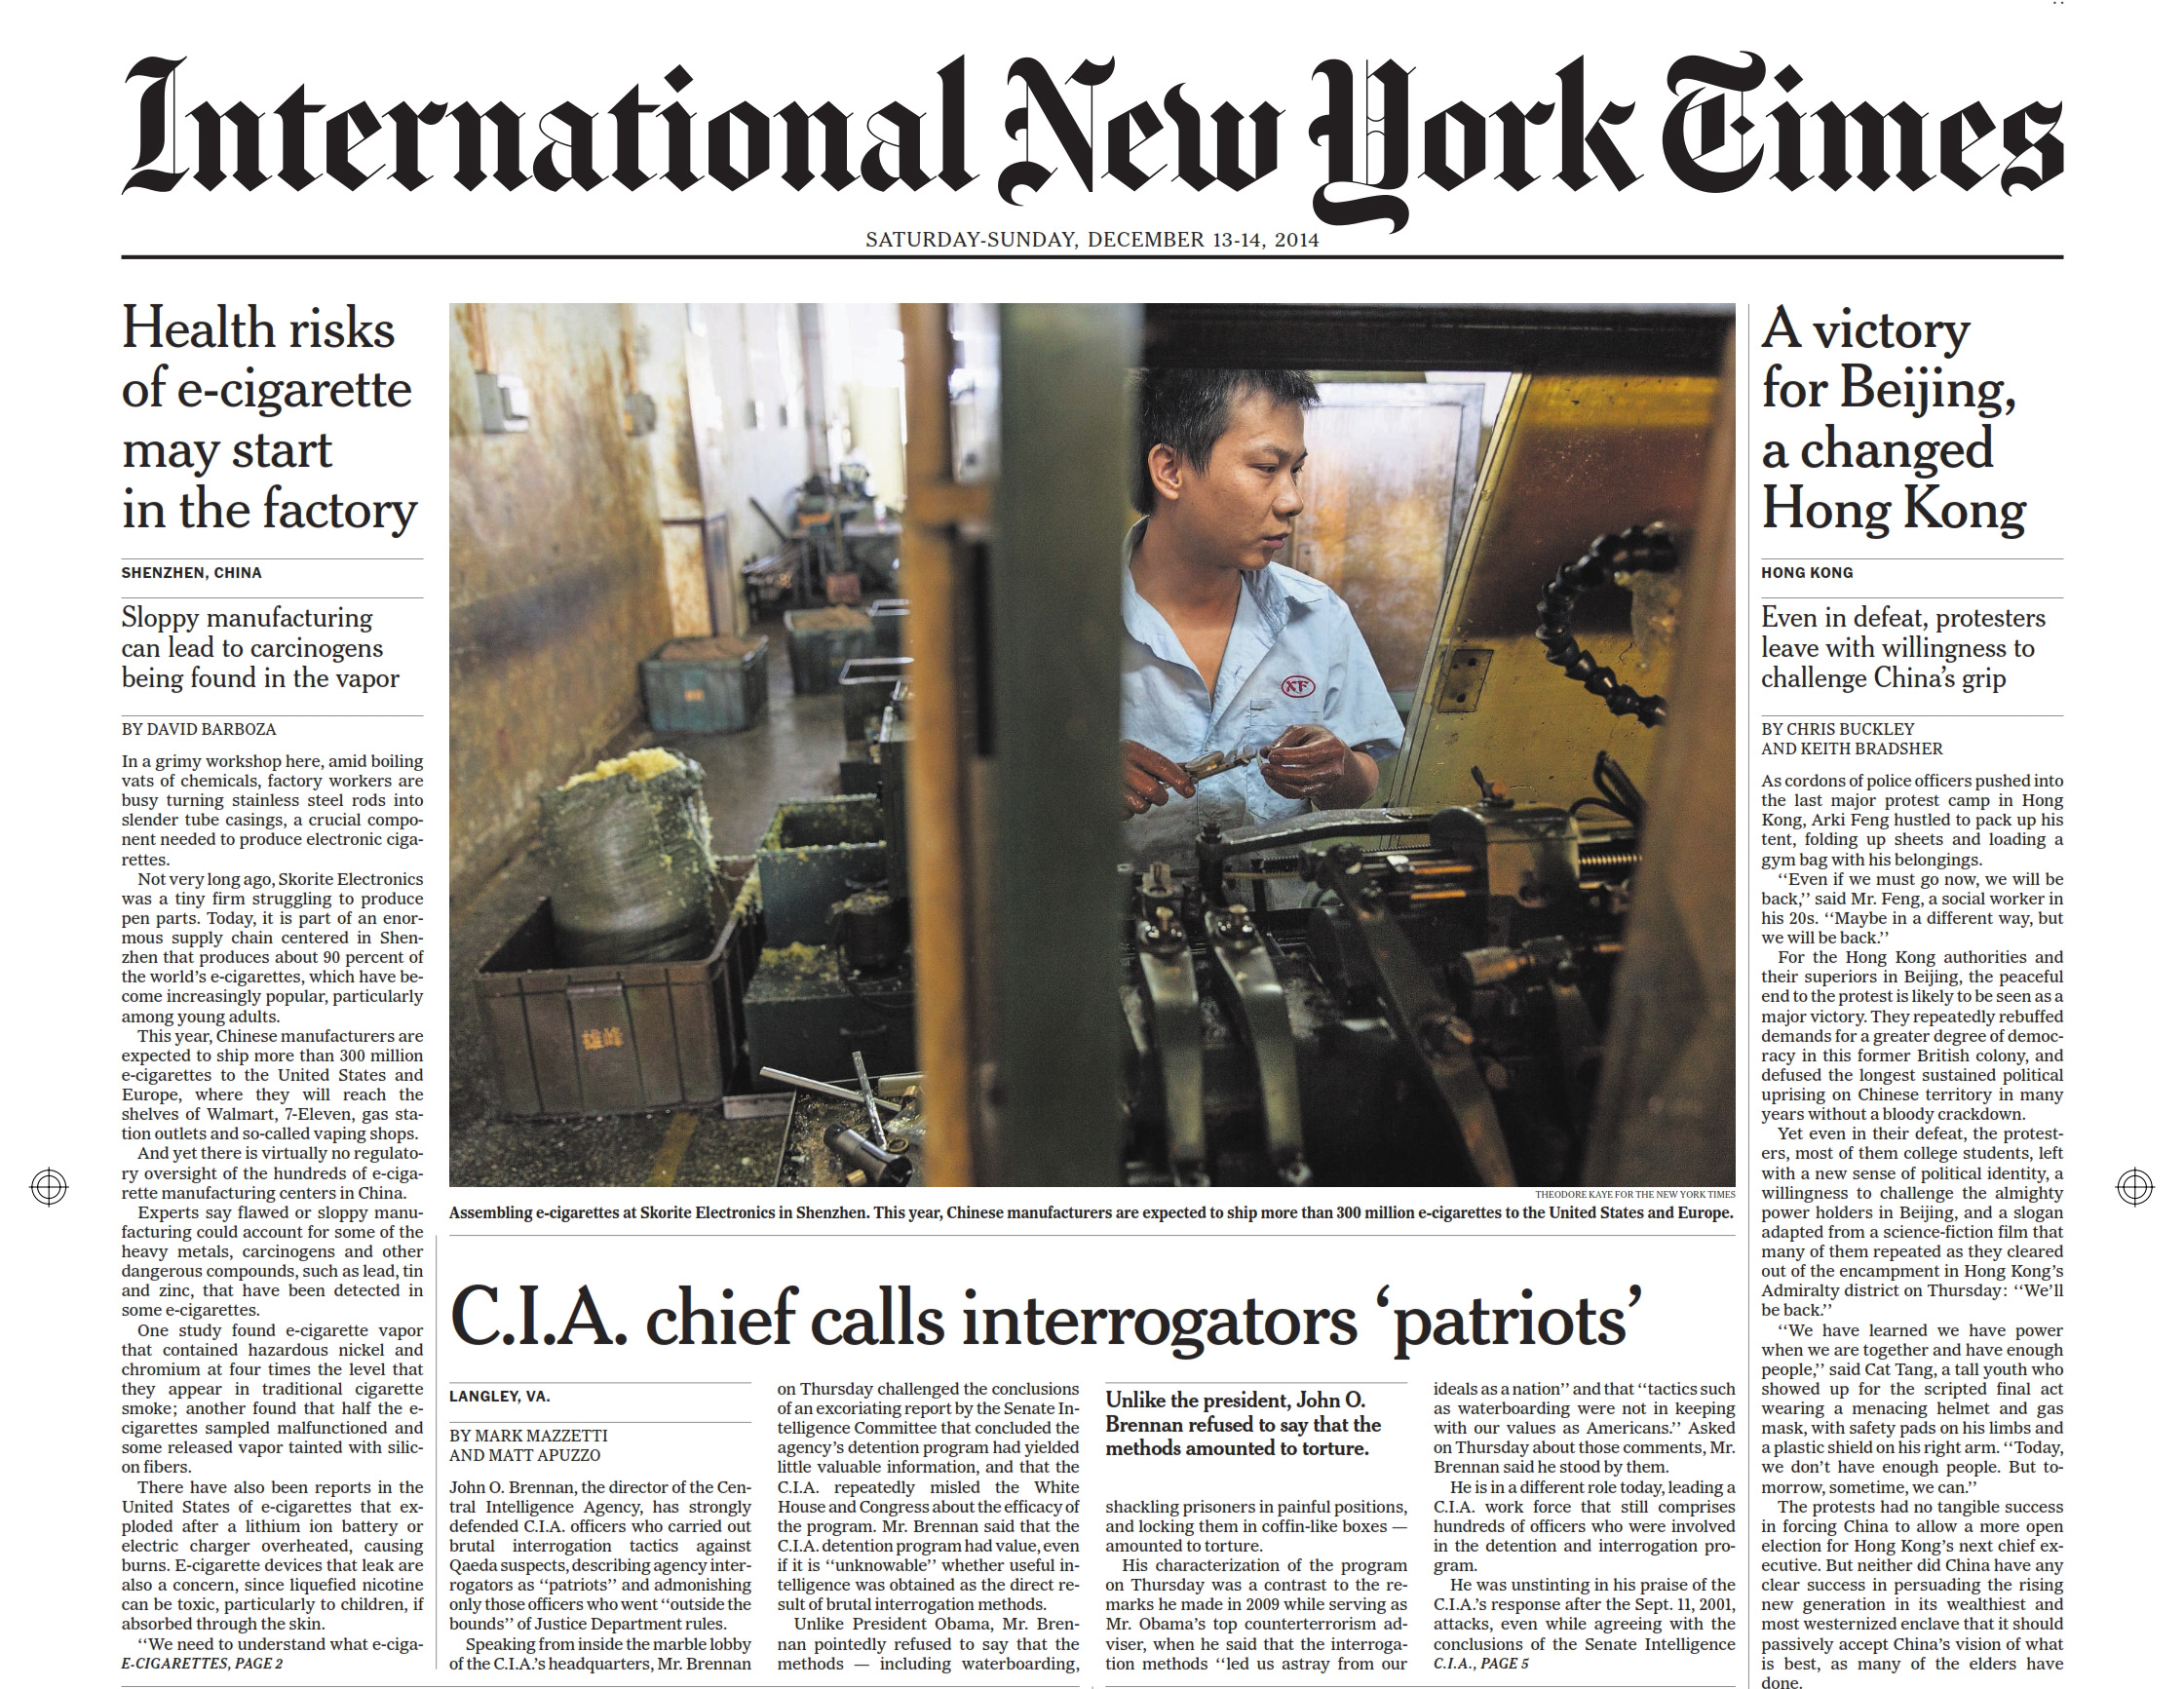 Page 1, International New York Times. December 13, 2014. Feature on E-cigarette production in Shenzhen, China